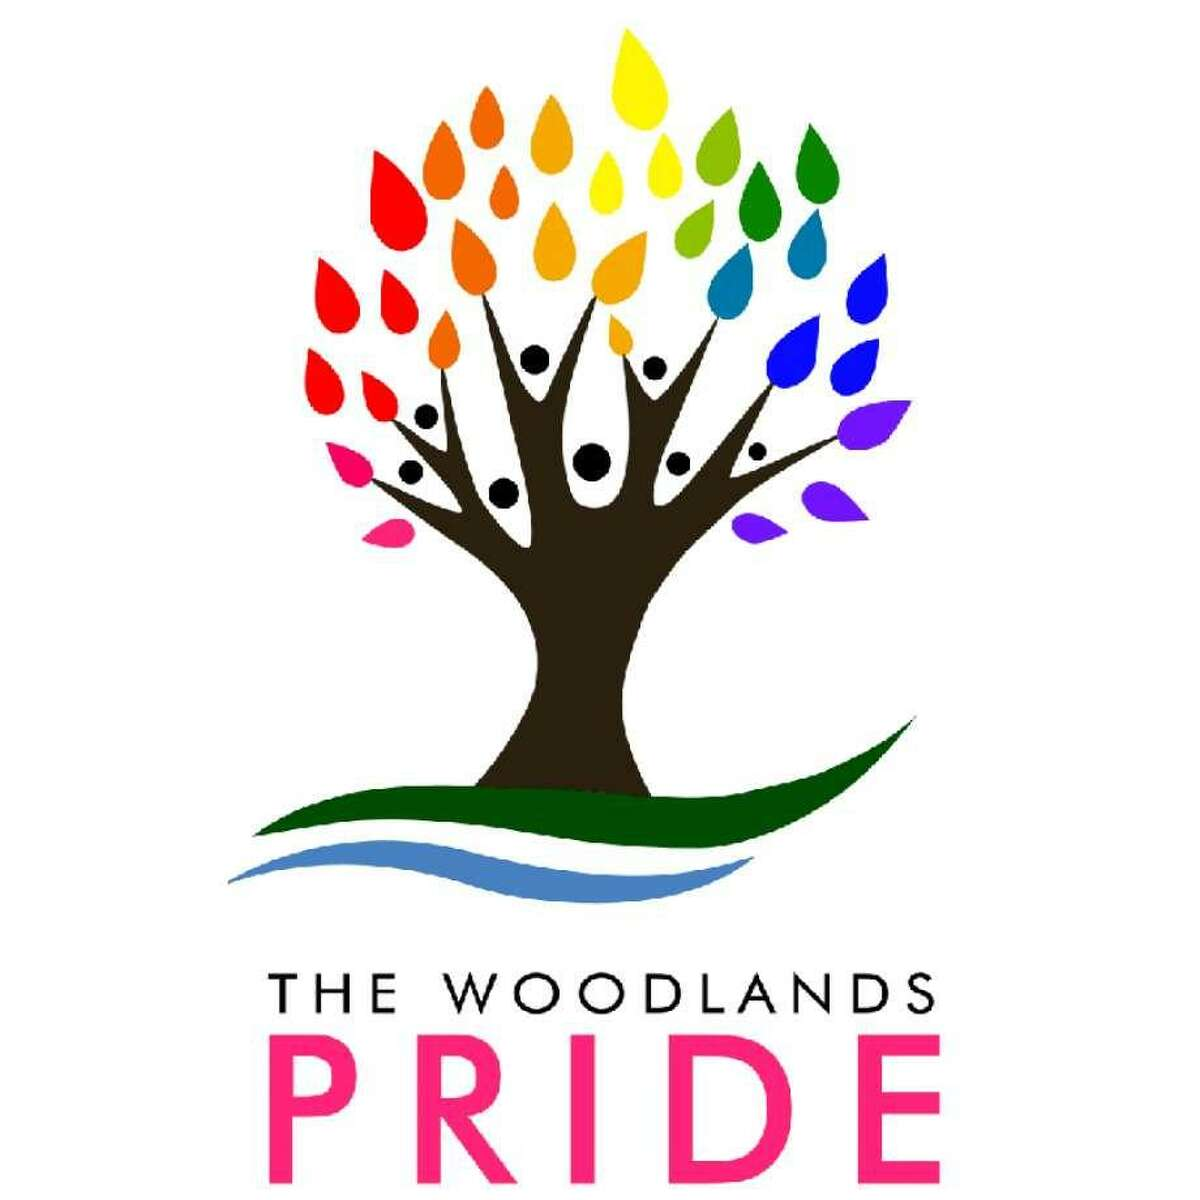 The Woodlands Pride organization is making progress on preparations for the inaugural pride festival scheduled for Sept. 8. Festival organizers have secured a sponsor, the necessary food and drink vendors and exceeded expectations for volunteers with at least four dozen people signing up on a website. The event is scheduled for Saturday, Sept. 8, in Town Green Park. Admission is free.